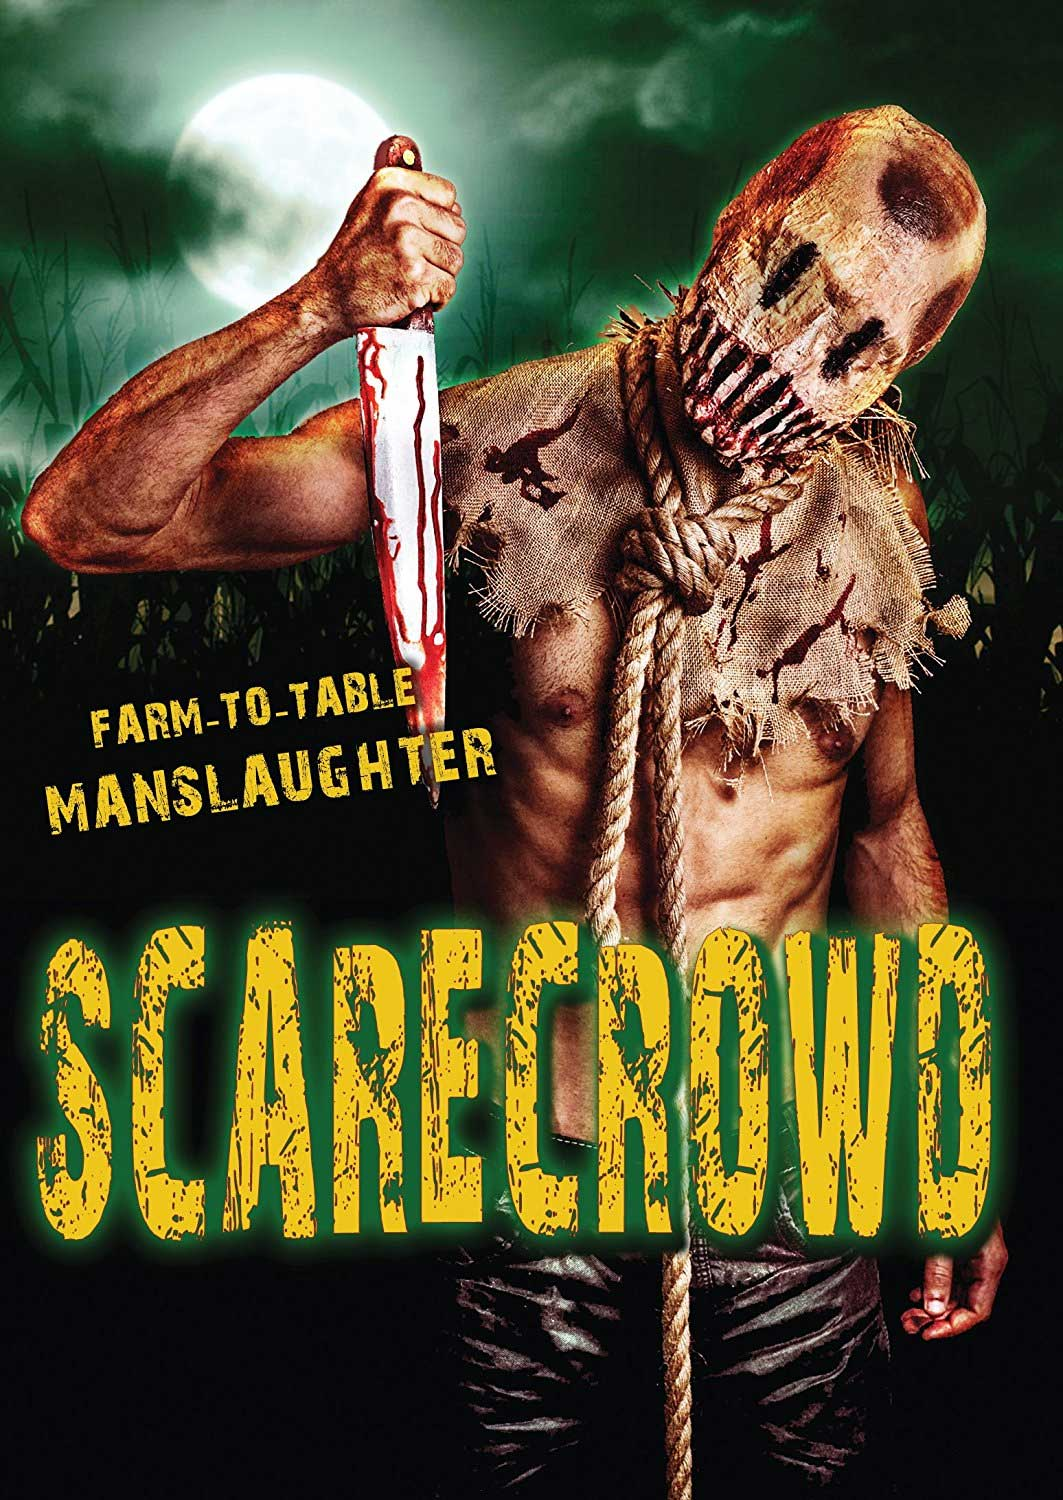 Severed Cinema Review of Scarecrowd from Srs Cinema.